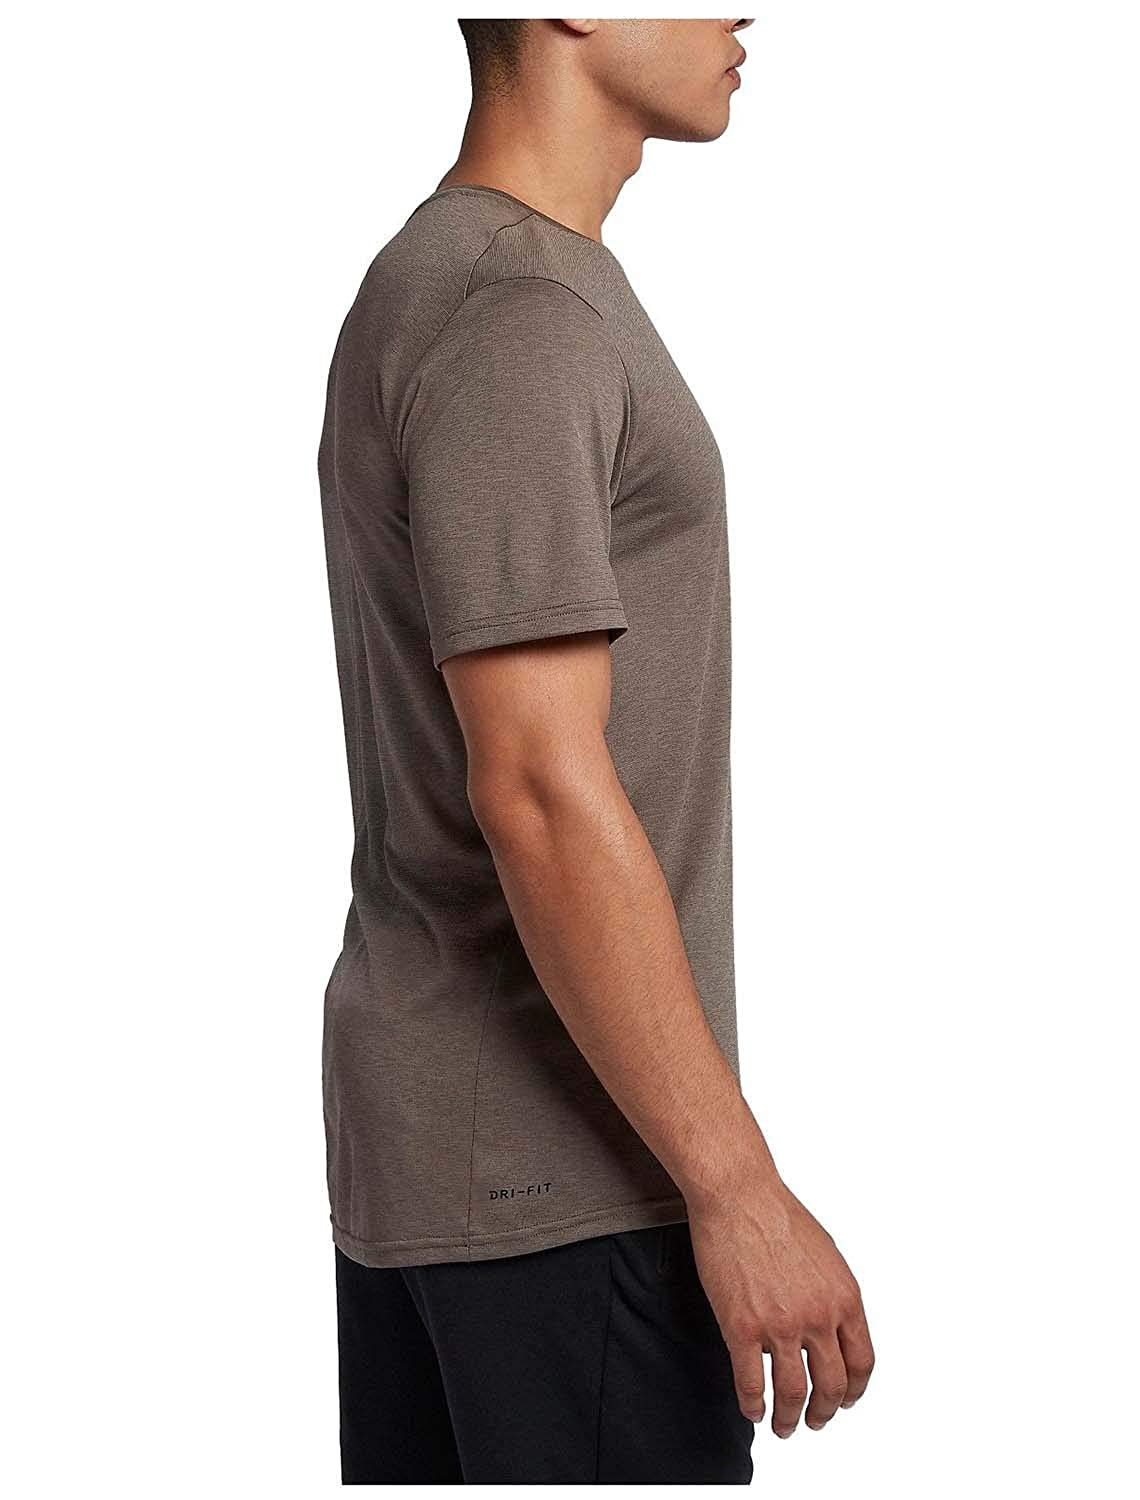 453d0c76 NIKE Mens Legend Short Sleeve Tee at Amazon Men's Clothing store: